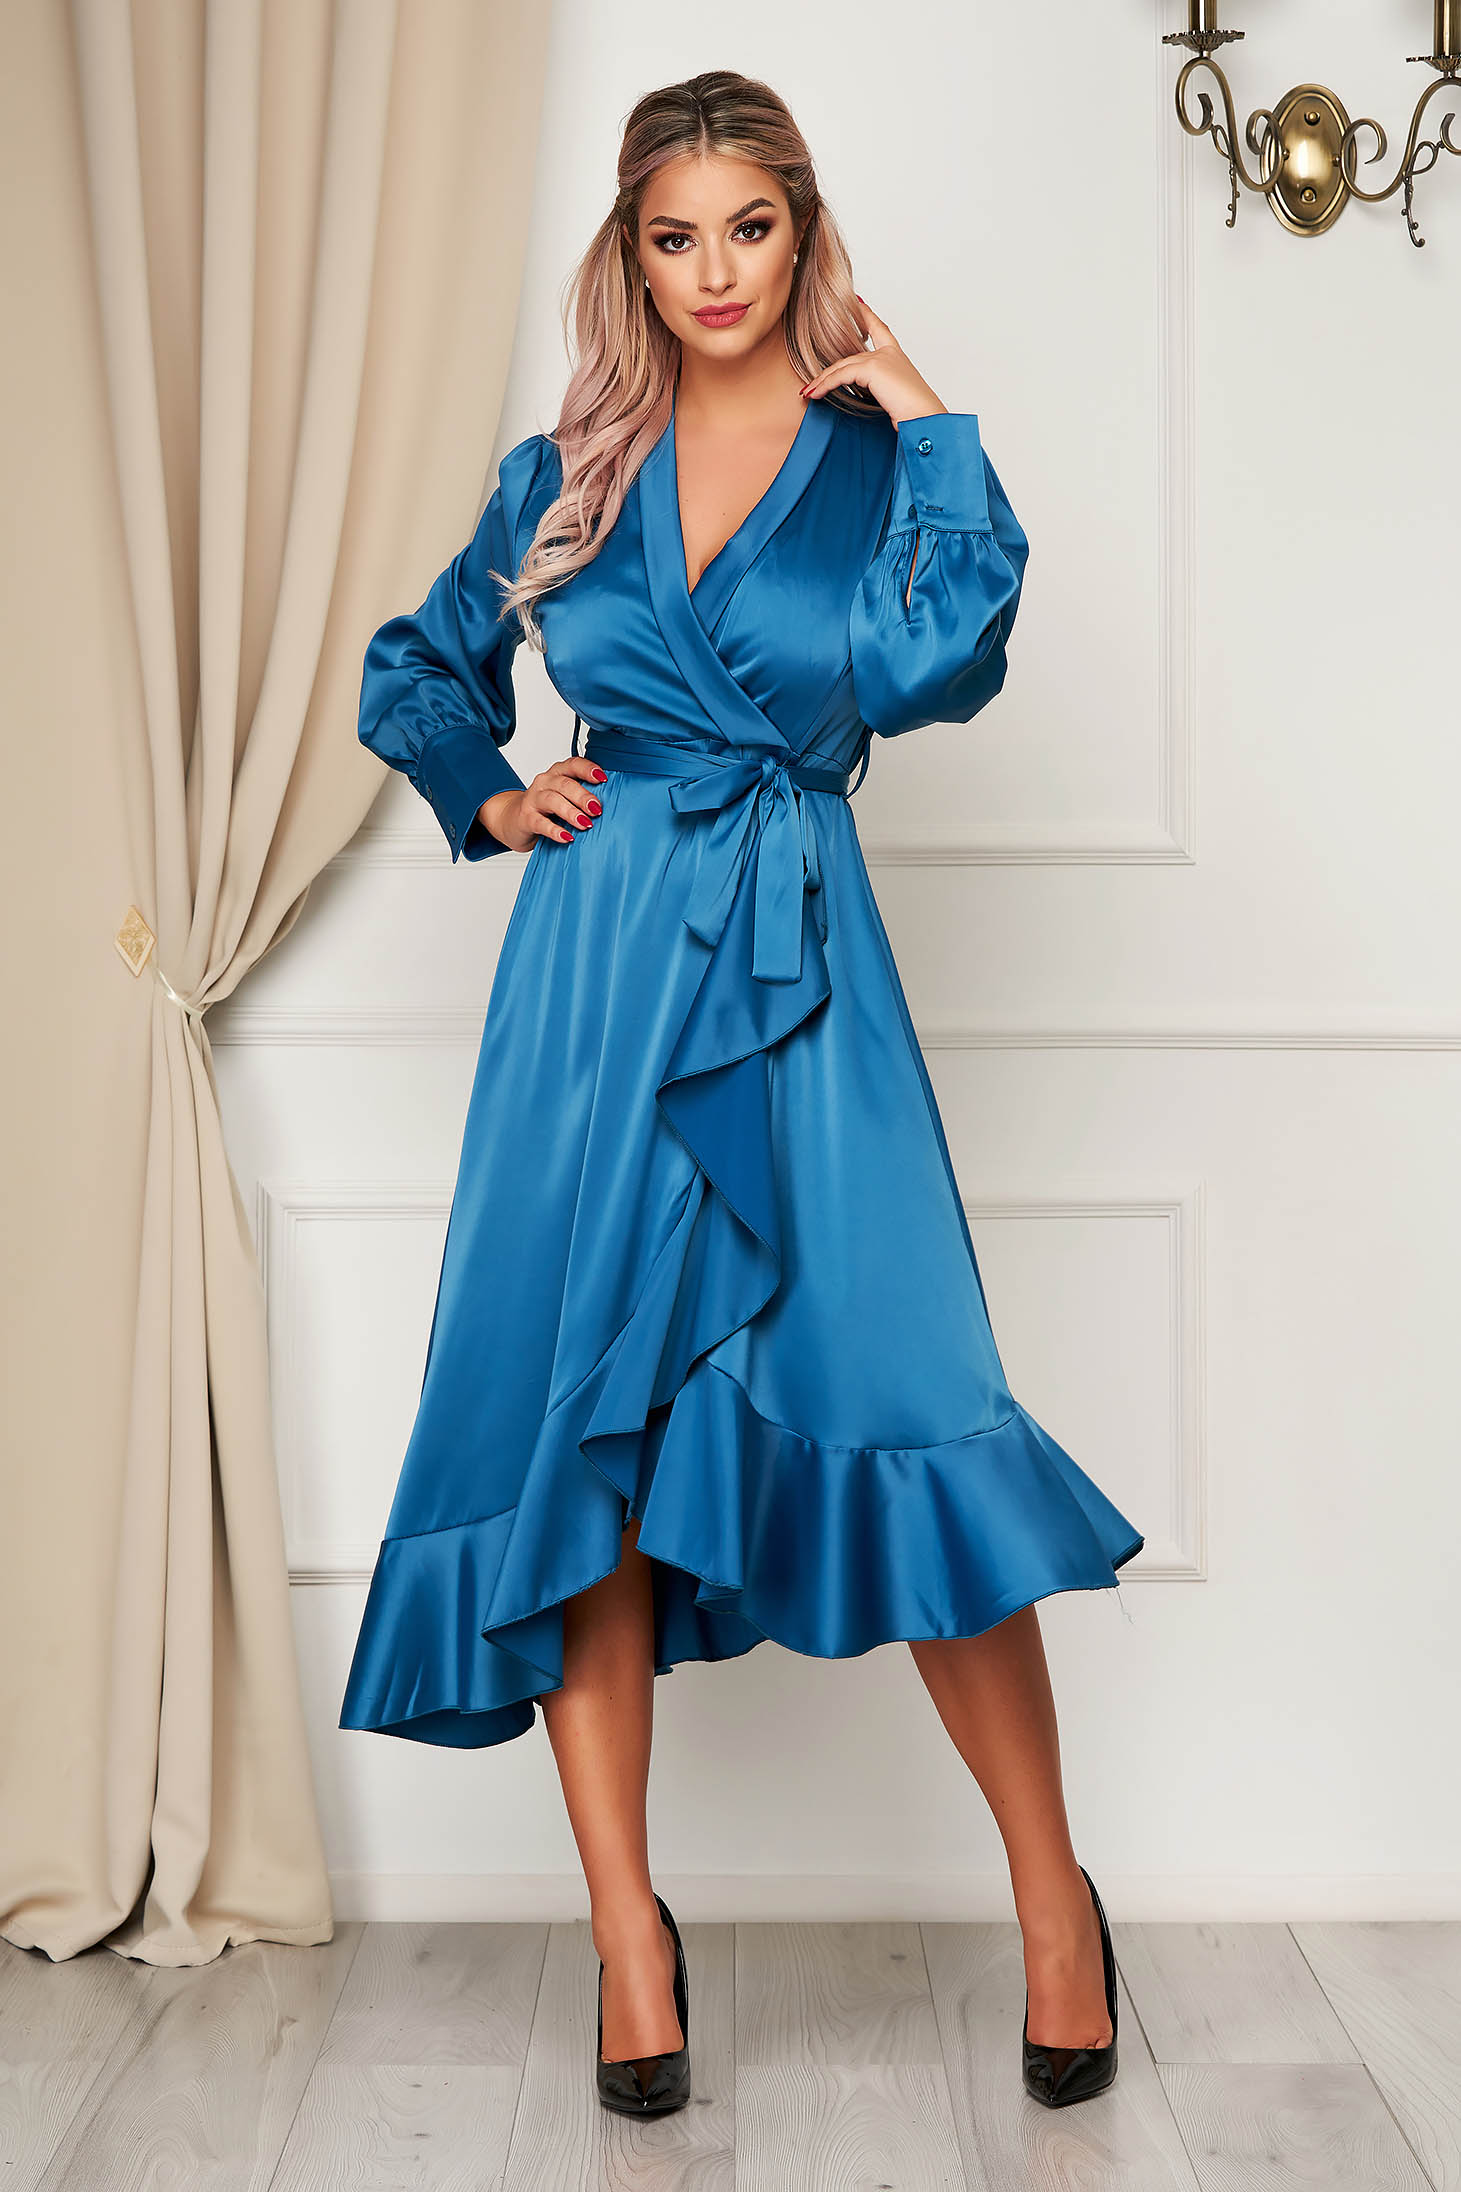 Turquoise dress elegant cloche wrap over front from satin fabric texture with ruffles at the buttom of the dress accessorized with tied waistband